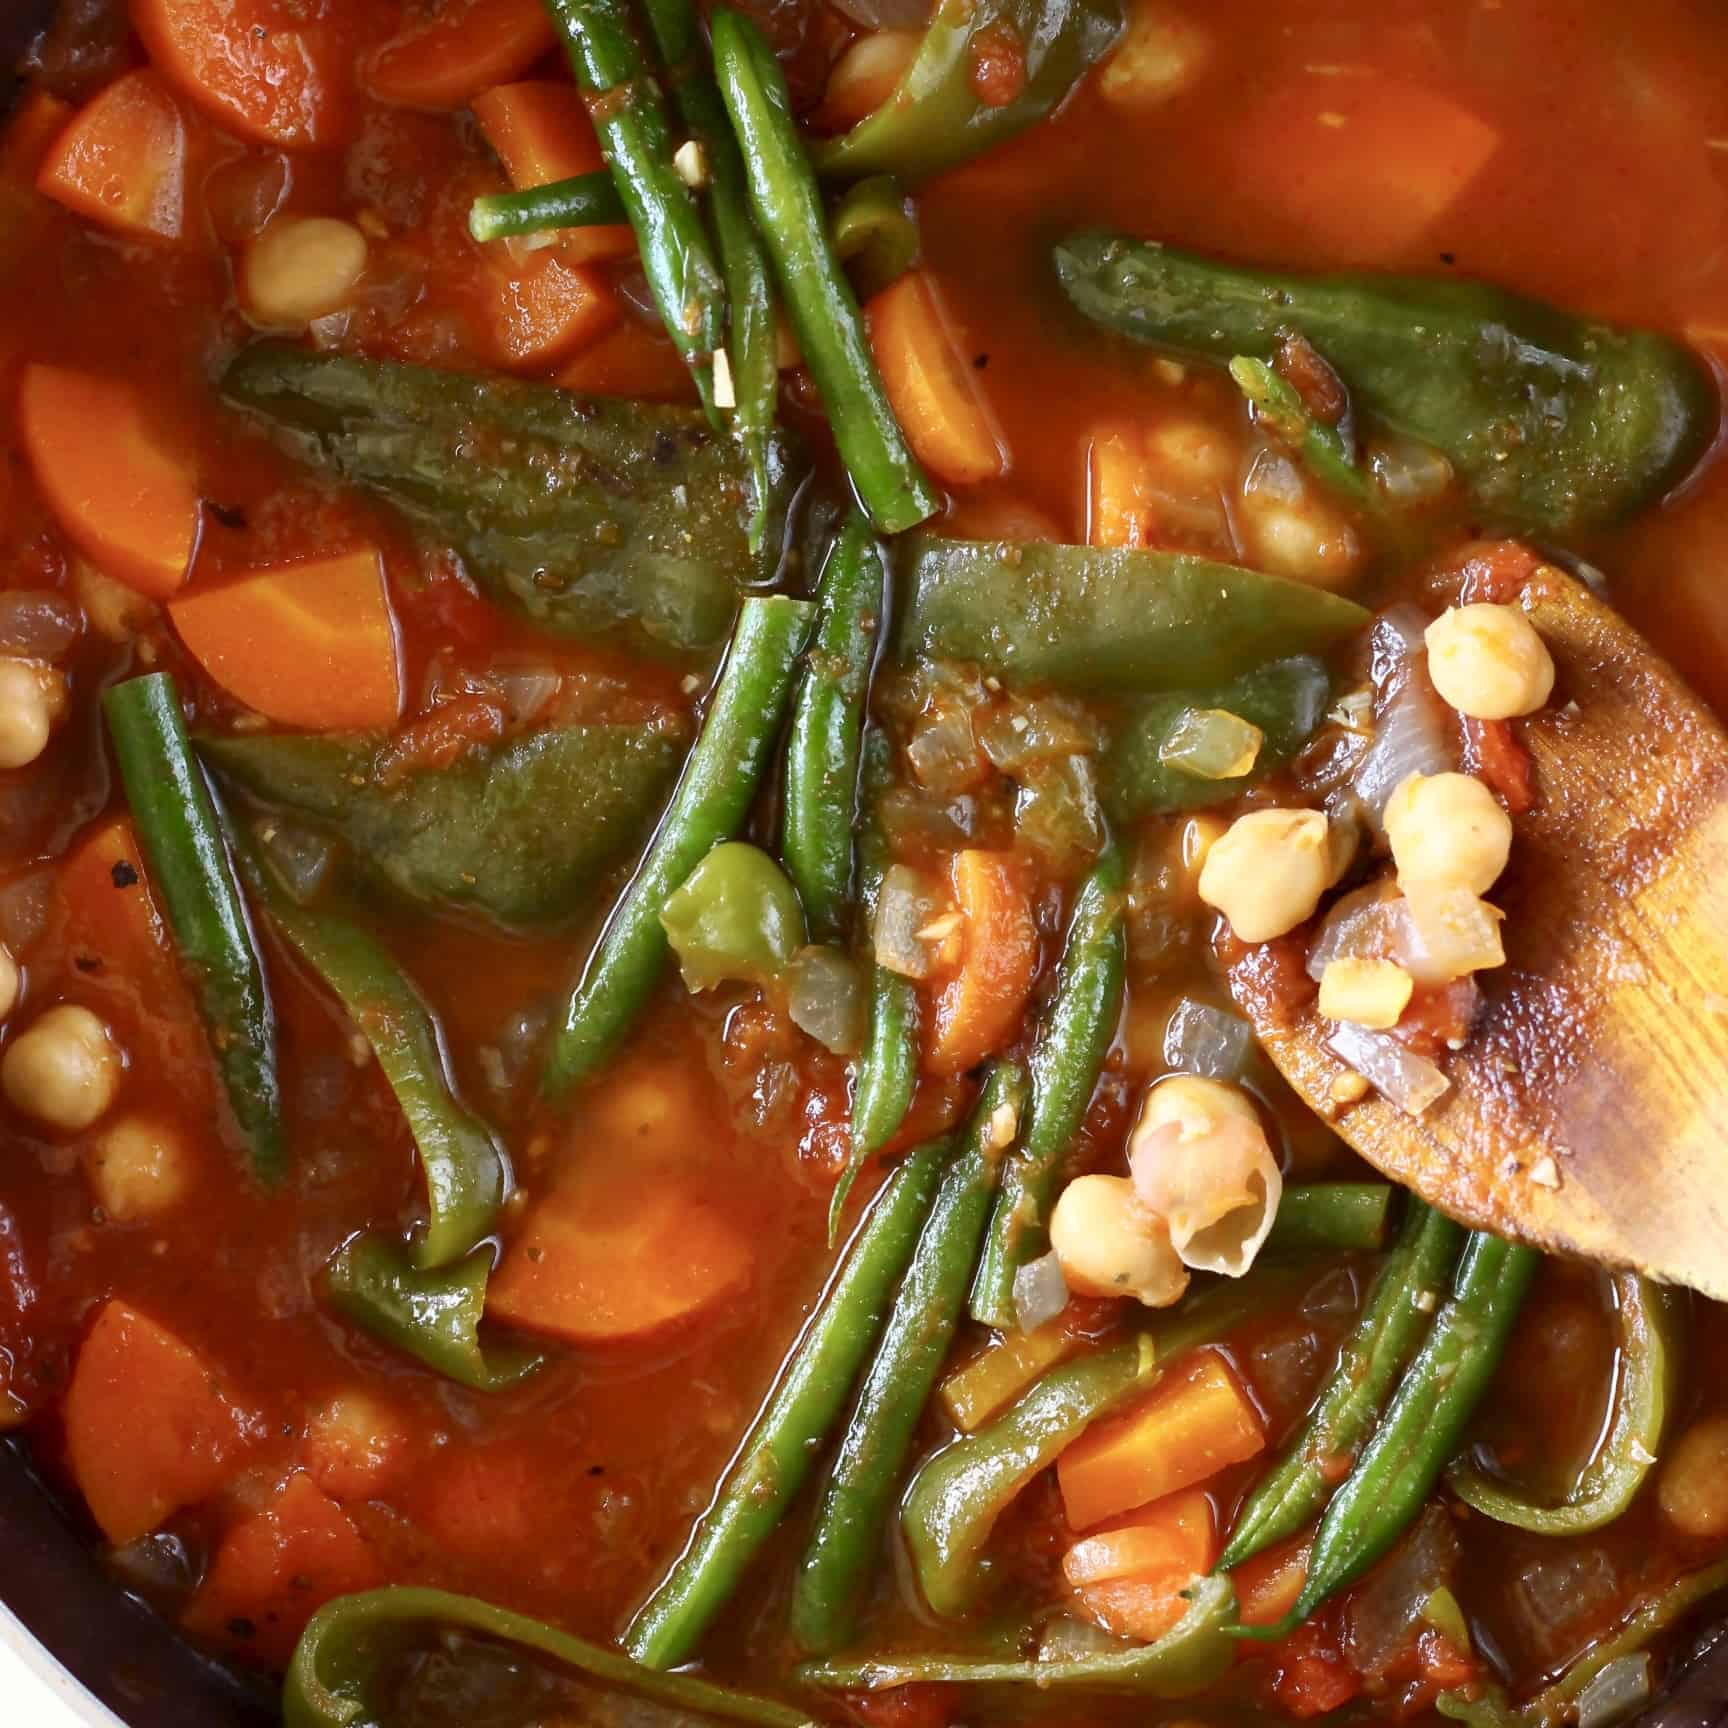 Photo of chickpea and vegetable tomato stew in a saucepan with a wooden spatula holding up some chickpeas